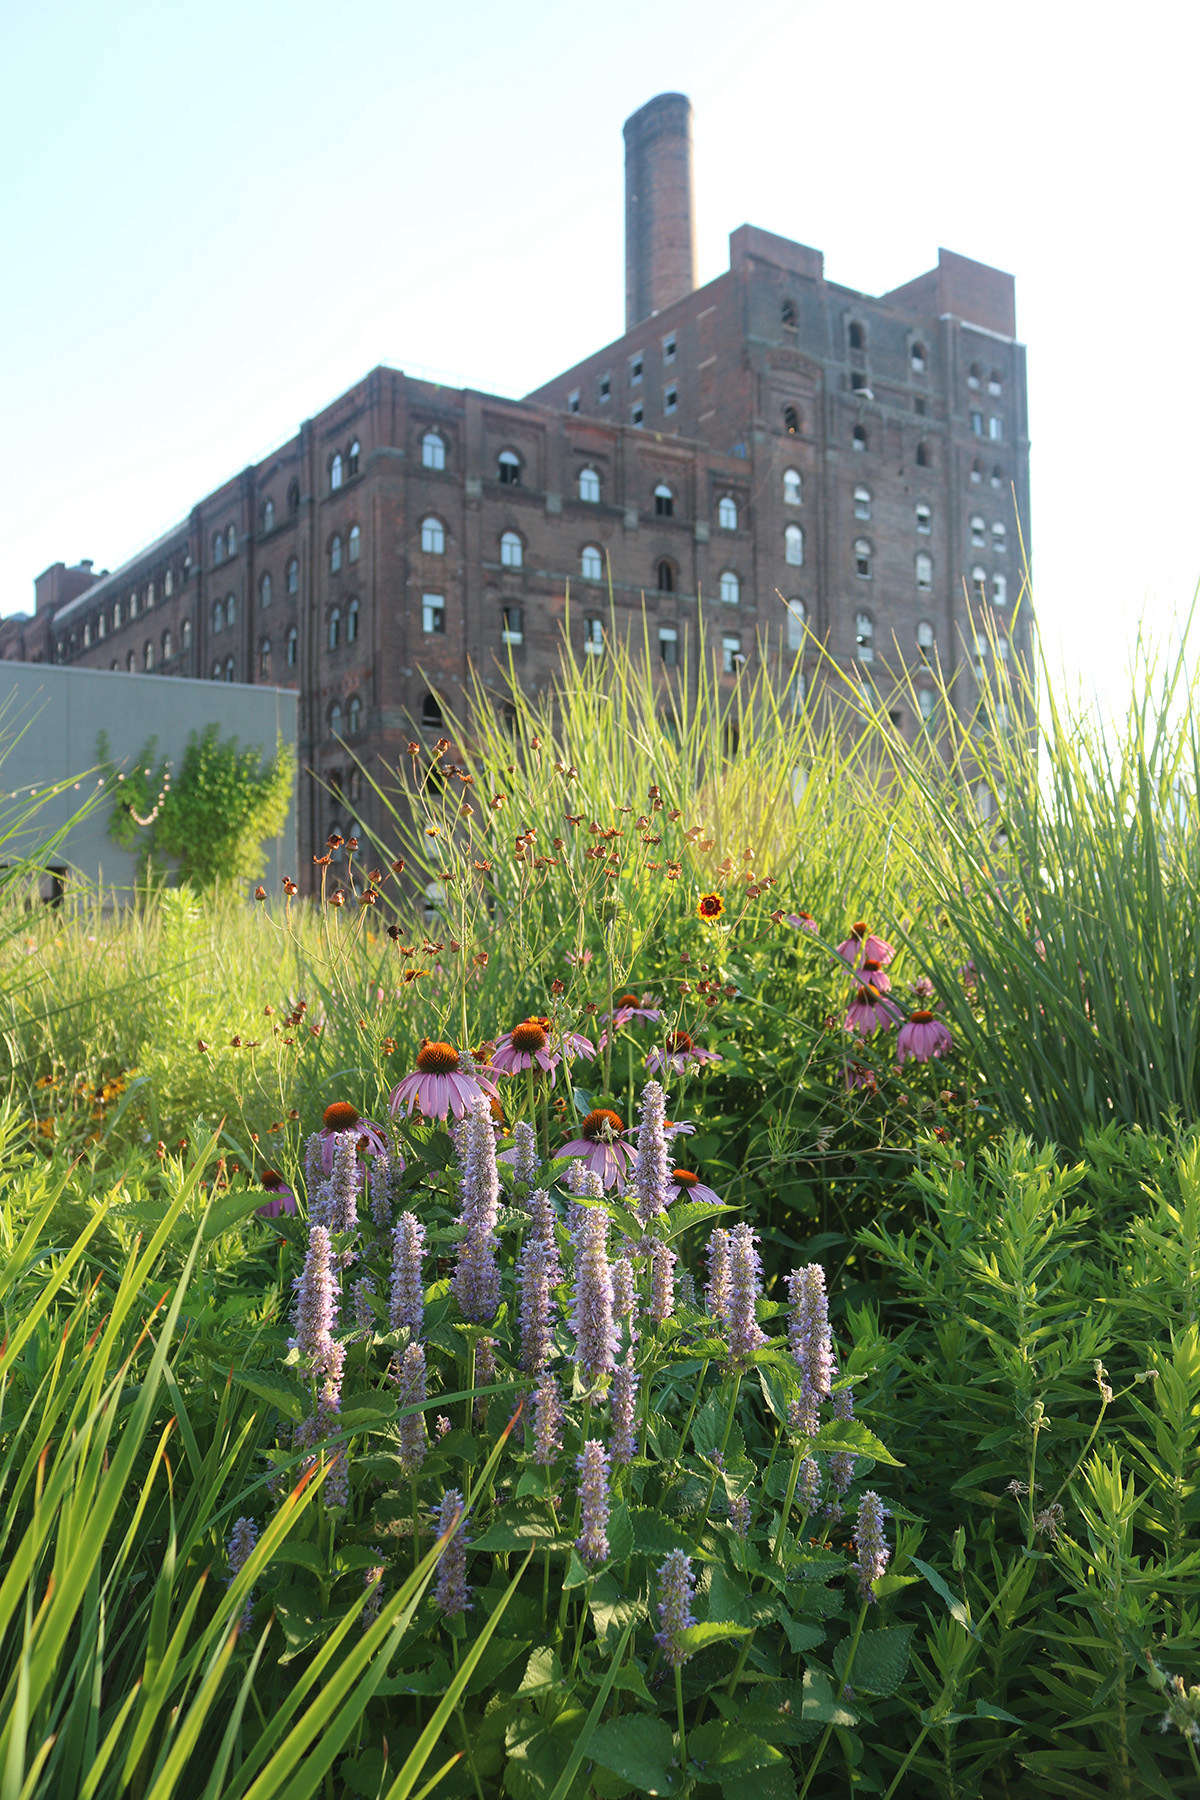 Against the backdrop of the Domino Sugar Refinery (whose entire complex was once the largest sugar refinery in the world),agastache, echinacea, and tickseed (coreopsis) bask in the hot summer sun.